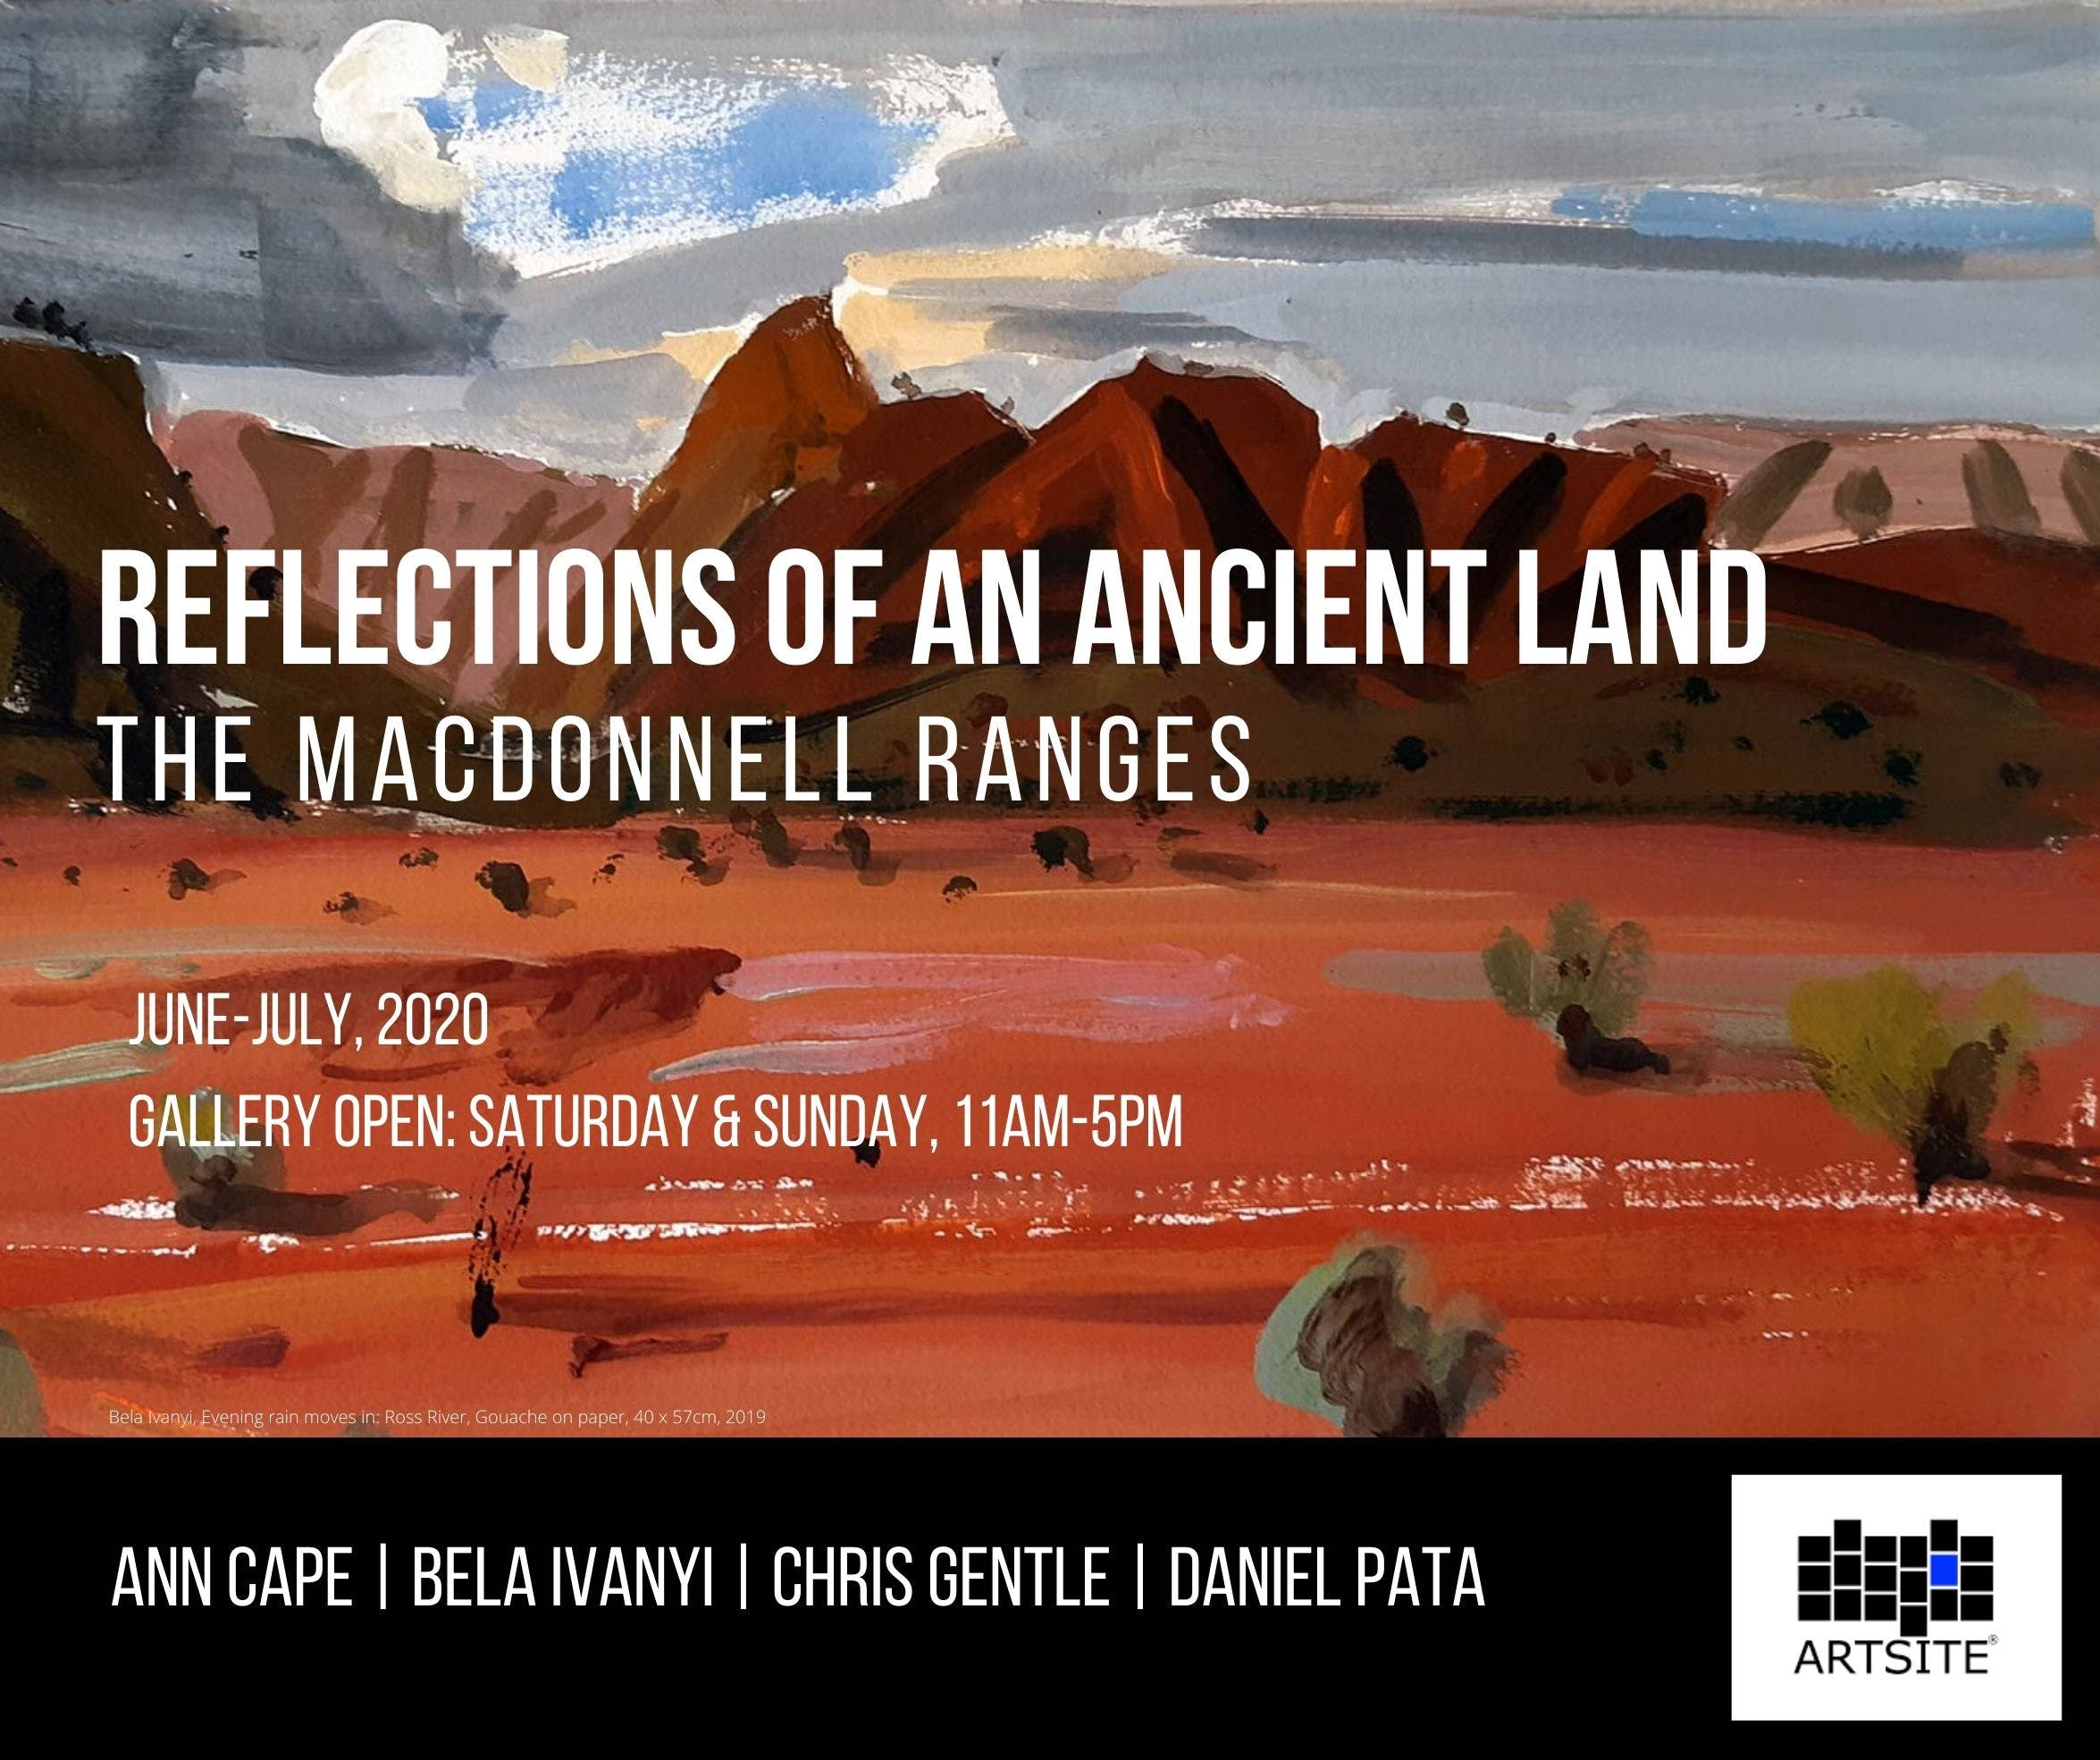 Reflections of An Ancient Land The MacDonnell Ranges - Tourism Brisbane